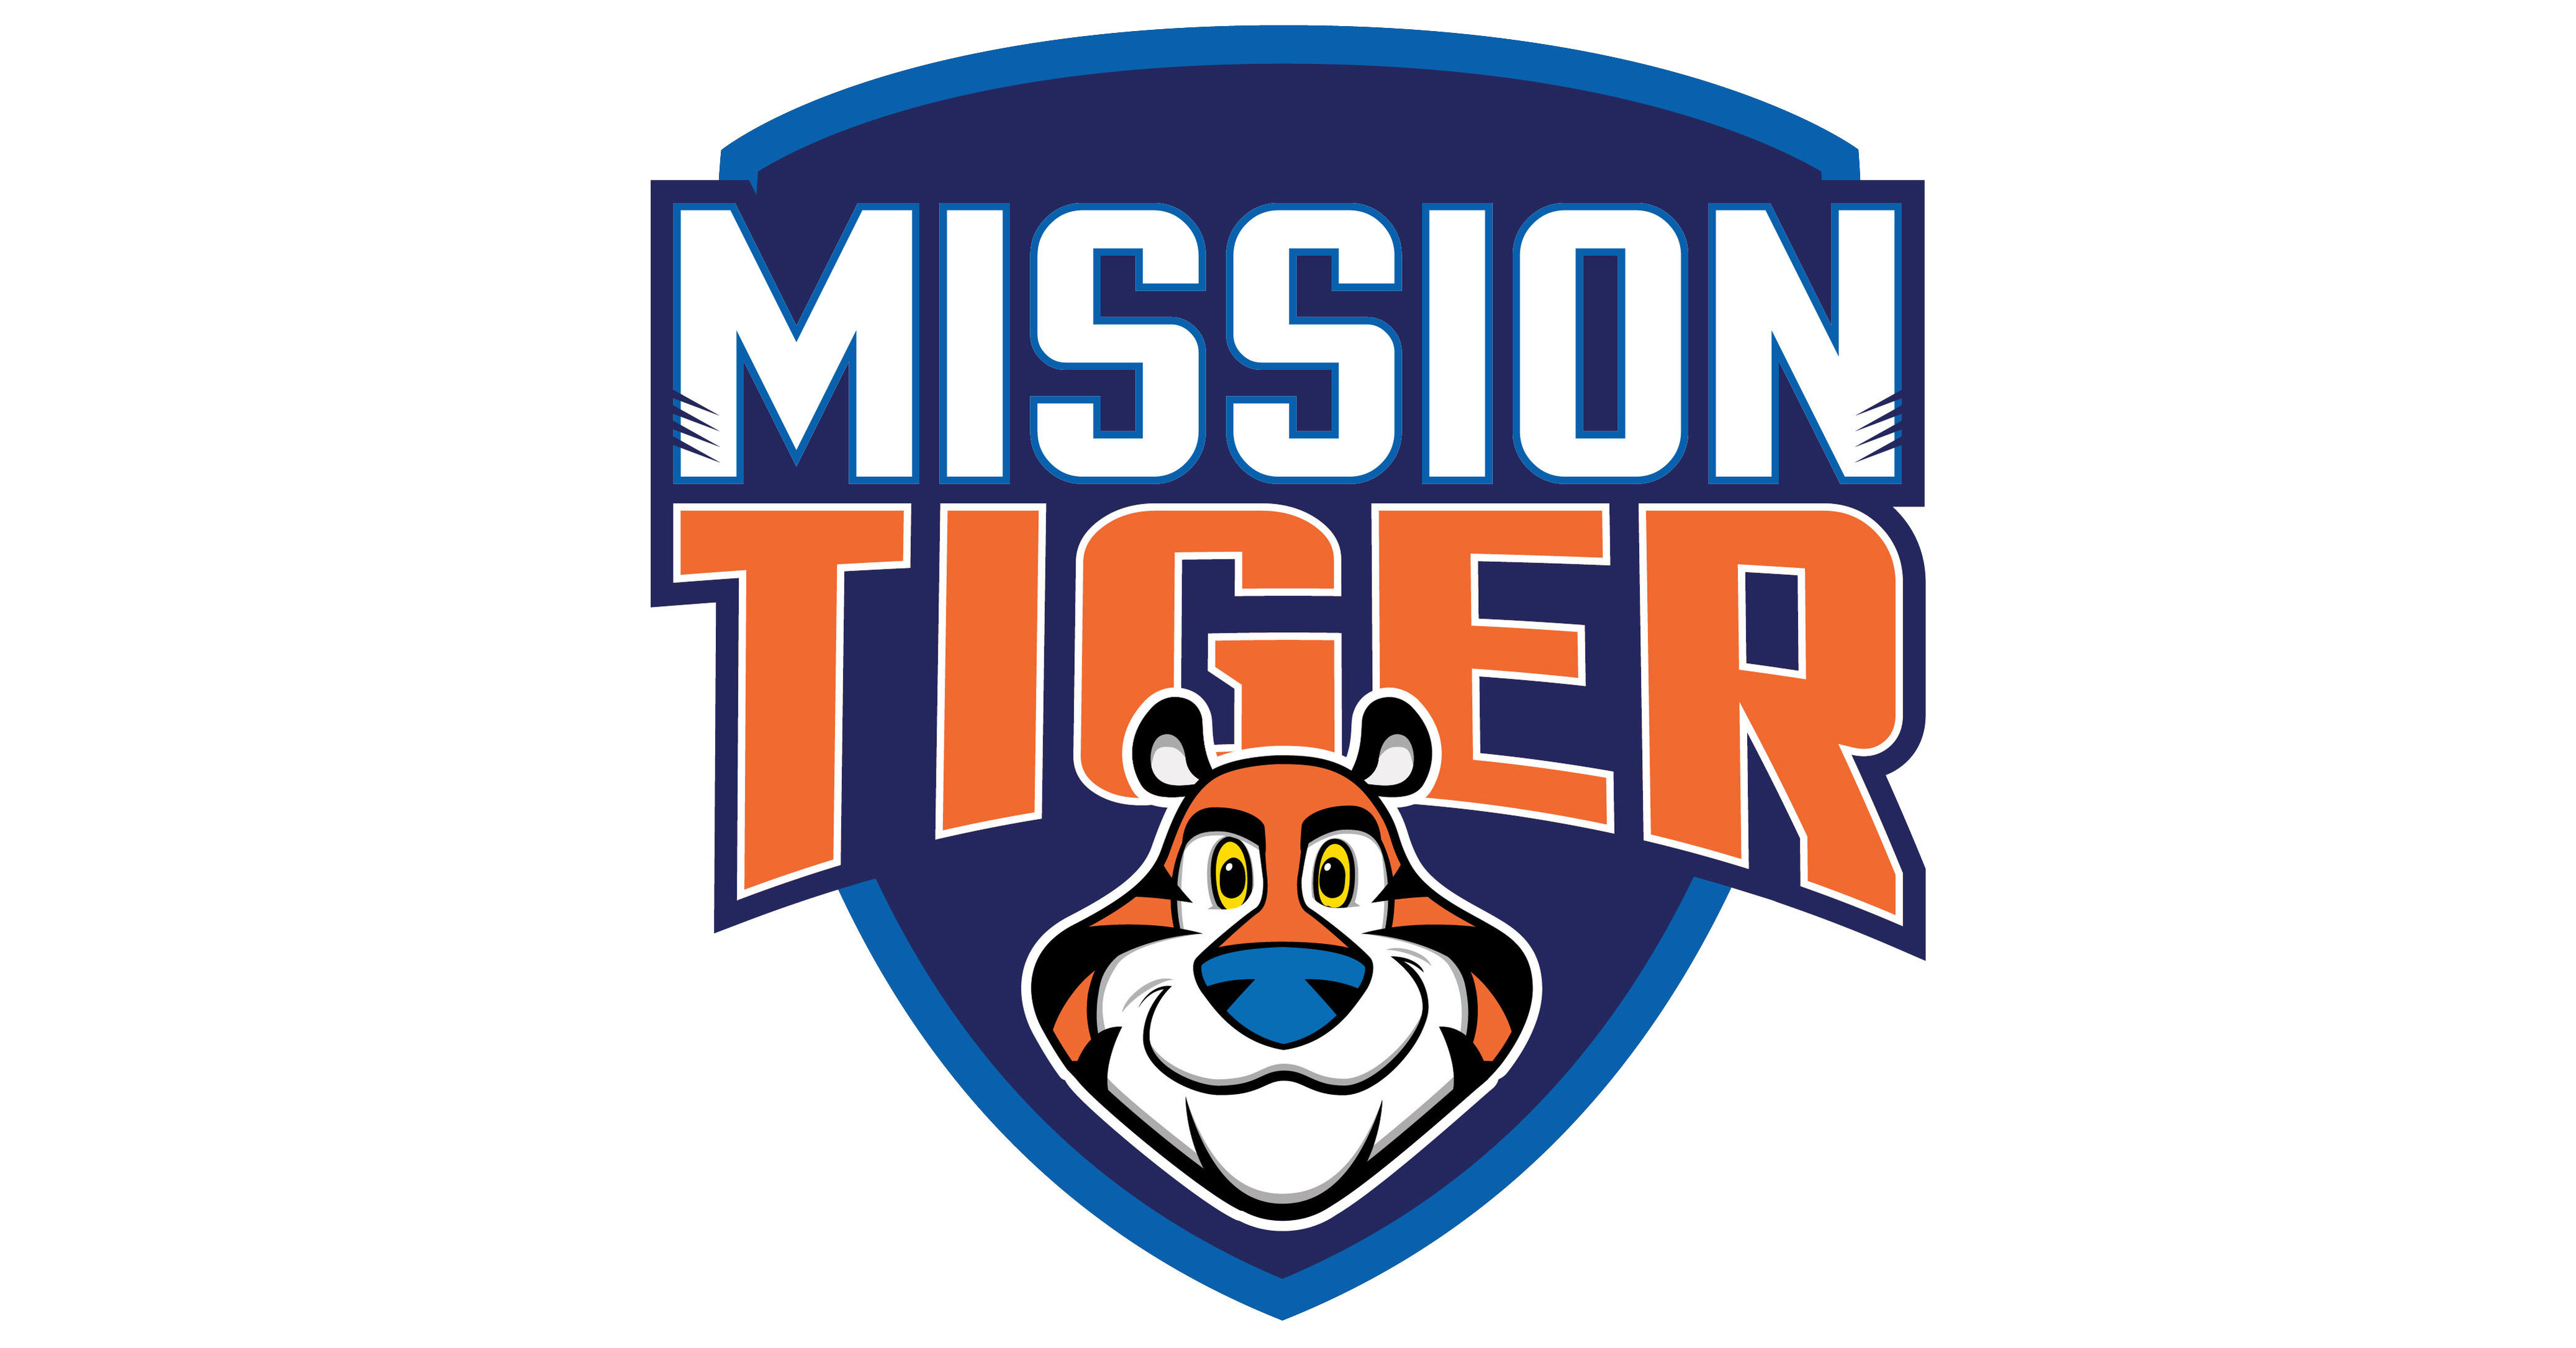 Sports management worldwide clipart image royalty free stock Tony the Tiger® is on a Mission to Give More Kids Access to ... image royalty free stock